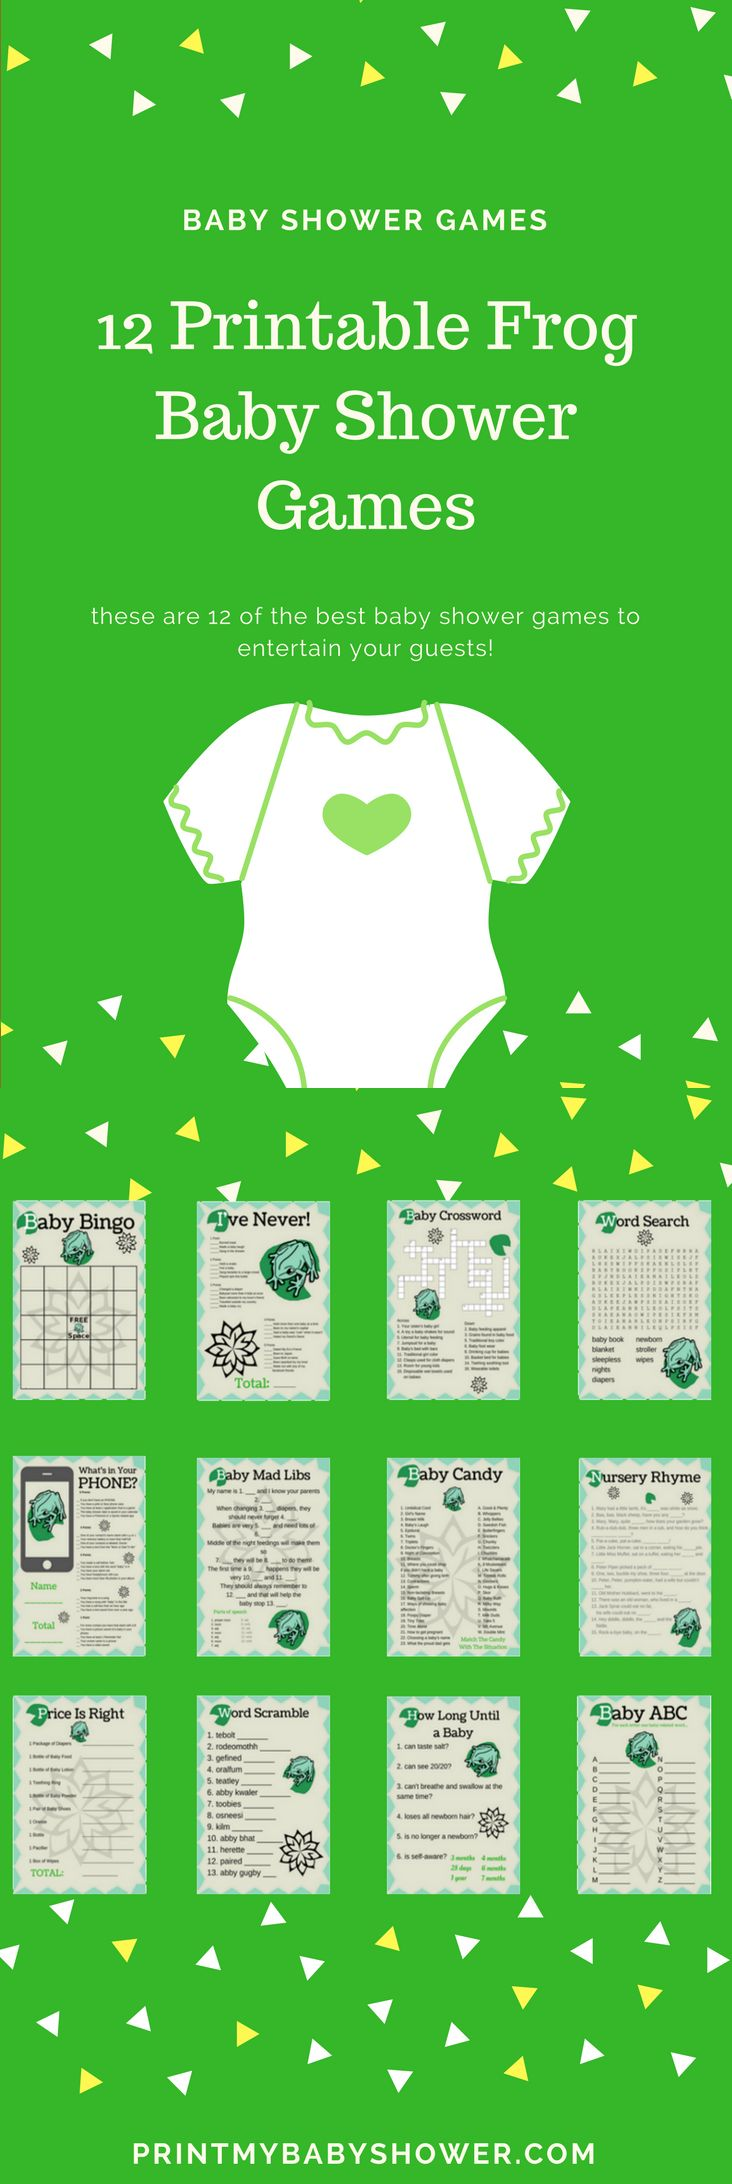 printable baby shower games | printable baby shower games for boys | printable baby shower games templates | frog baby shower theme | frog baby shower ideas